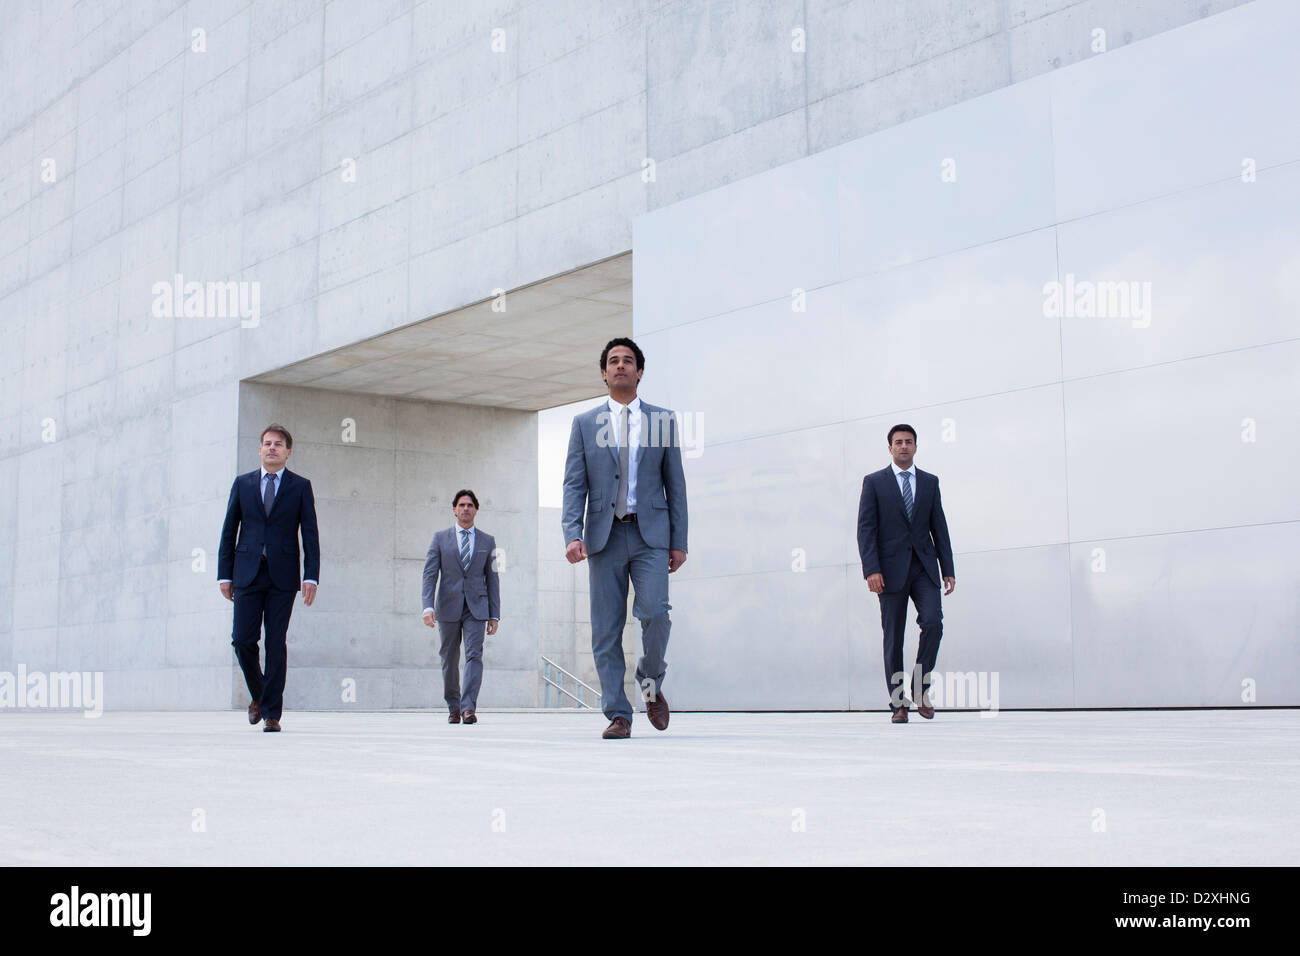 Businessmen leaving modern cultural center - Stock Image